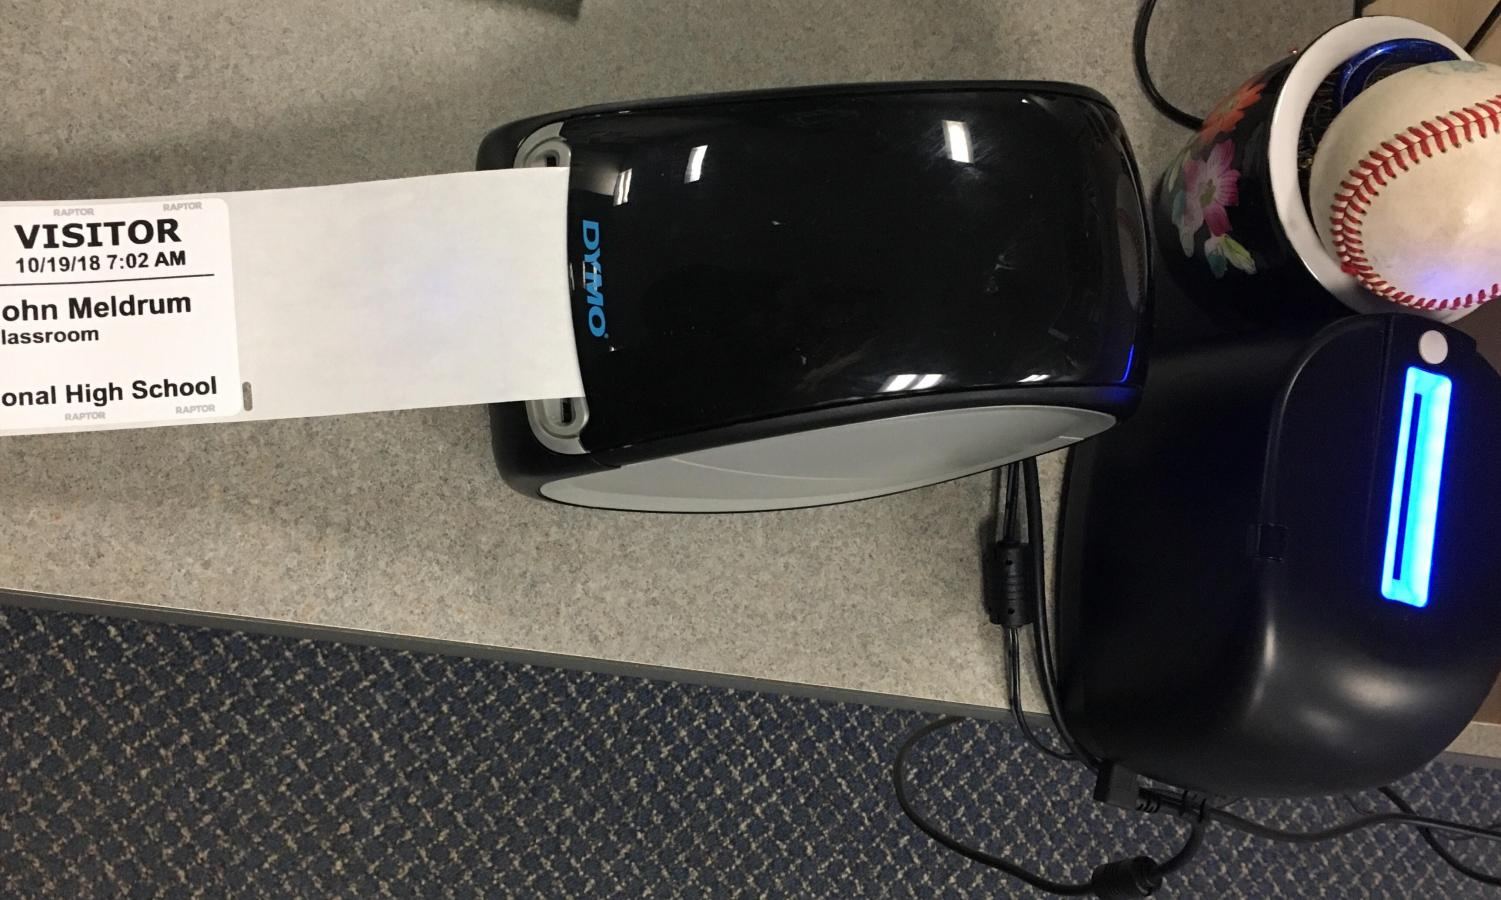 The Raptor ID scanner and badge printer on Kimberly Wright's desk